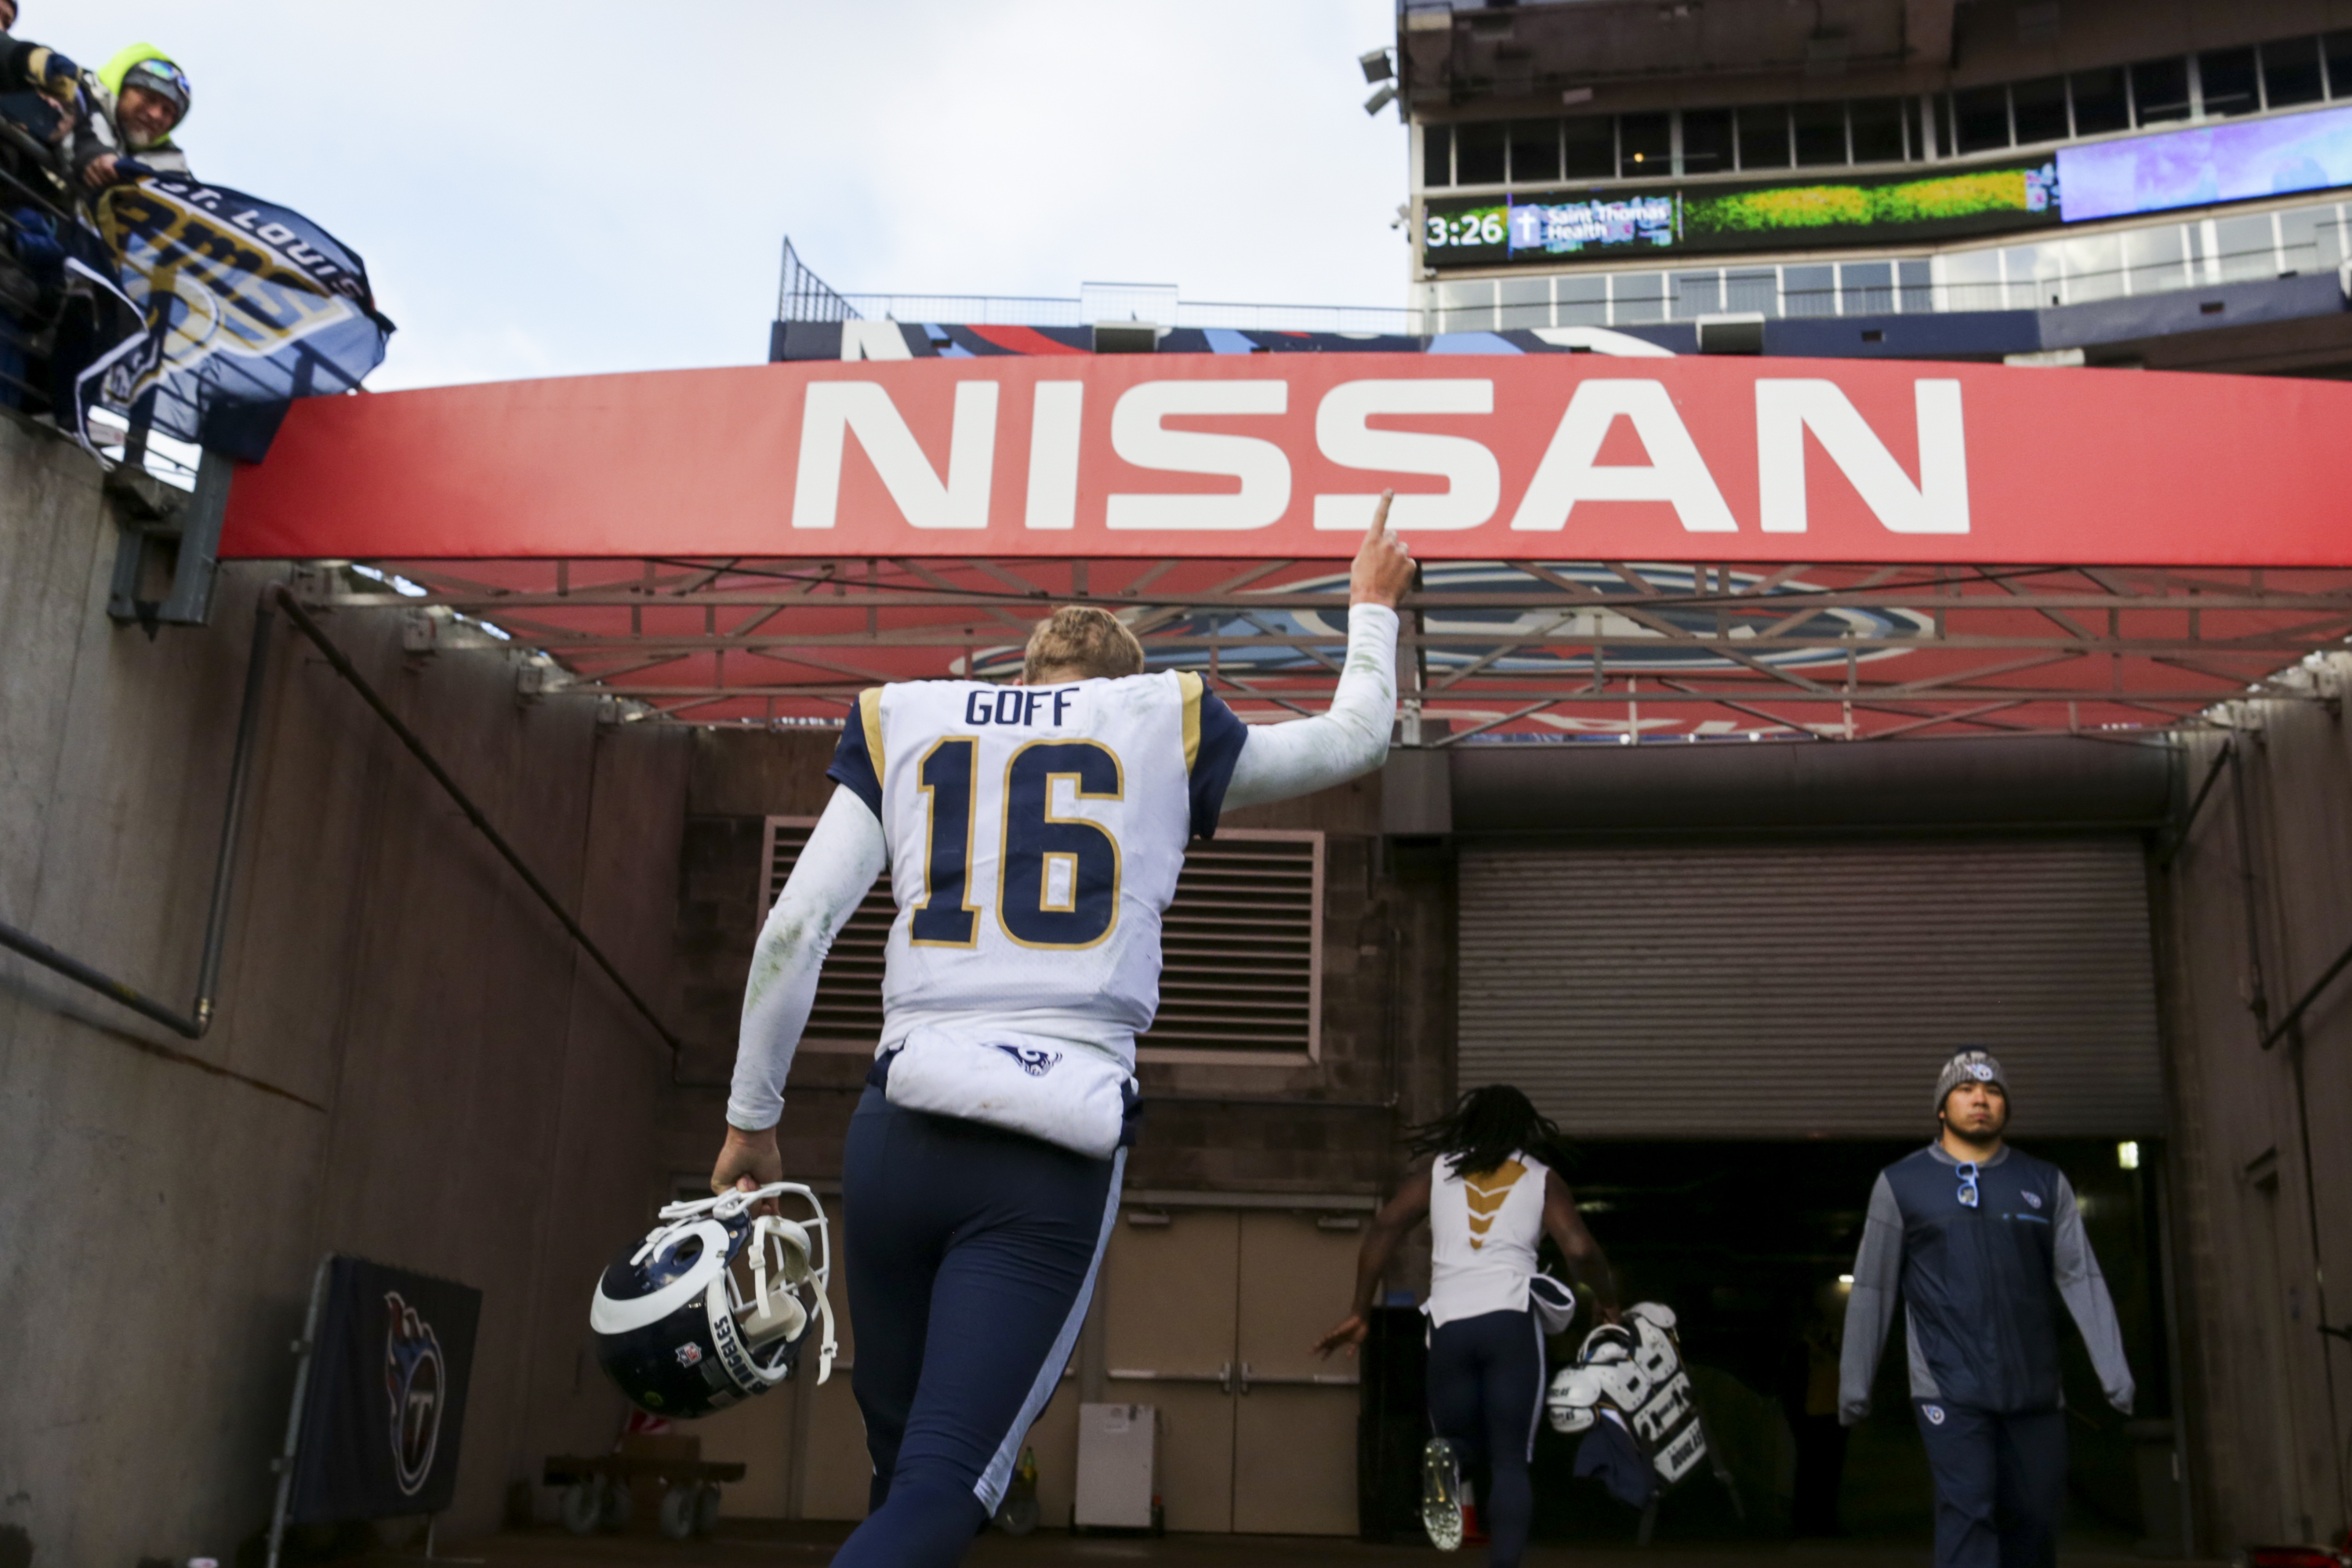 Los Angeles Rams QB Jared Goff celebrates after clinching the NFC West crown